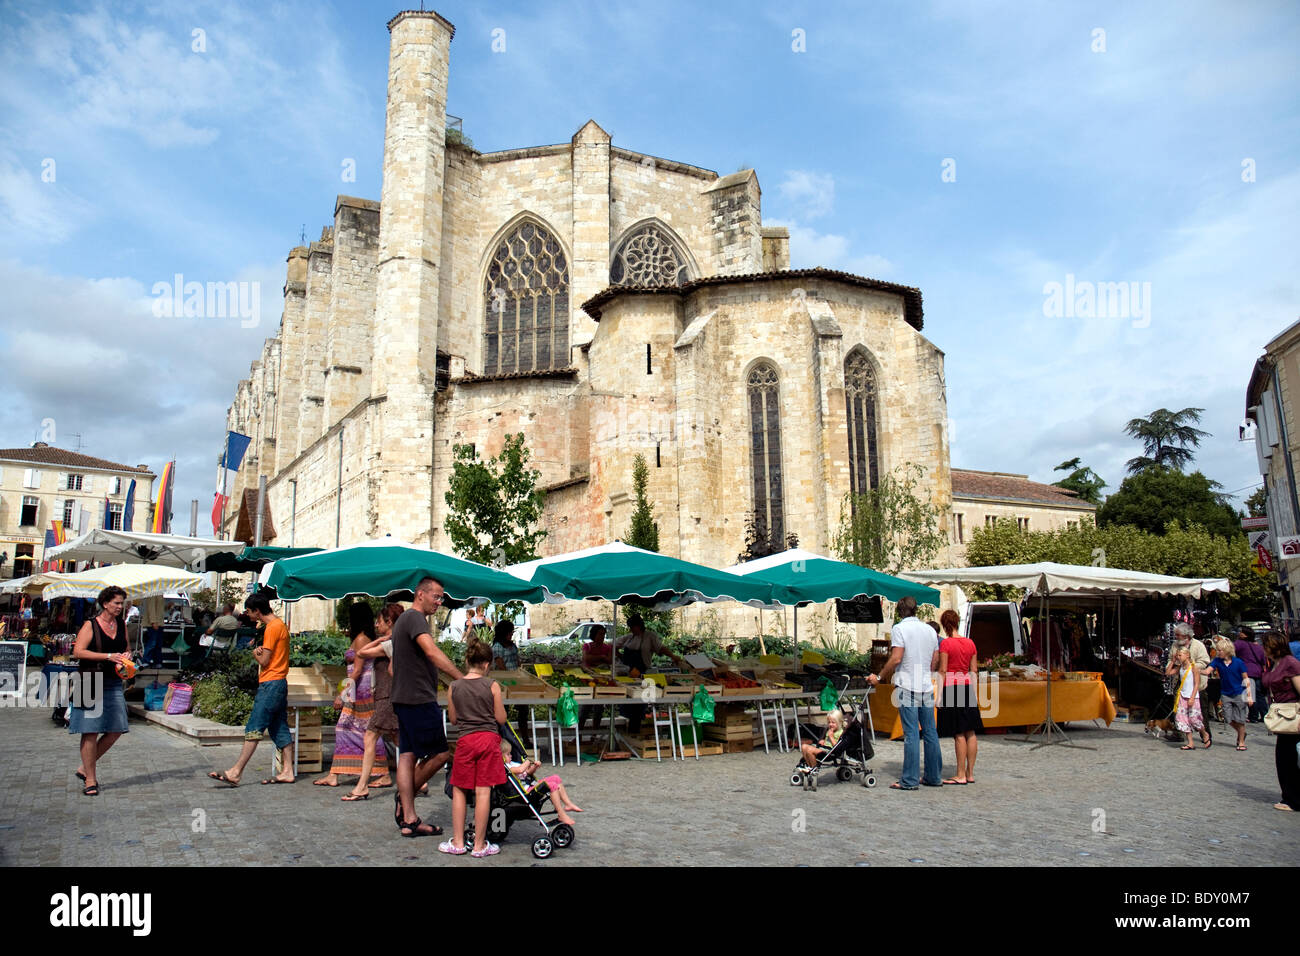 Market day in the Gers cathedral town of Condom in southwest France - Stock Image